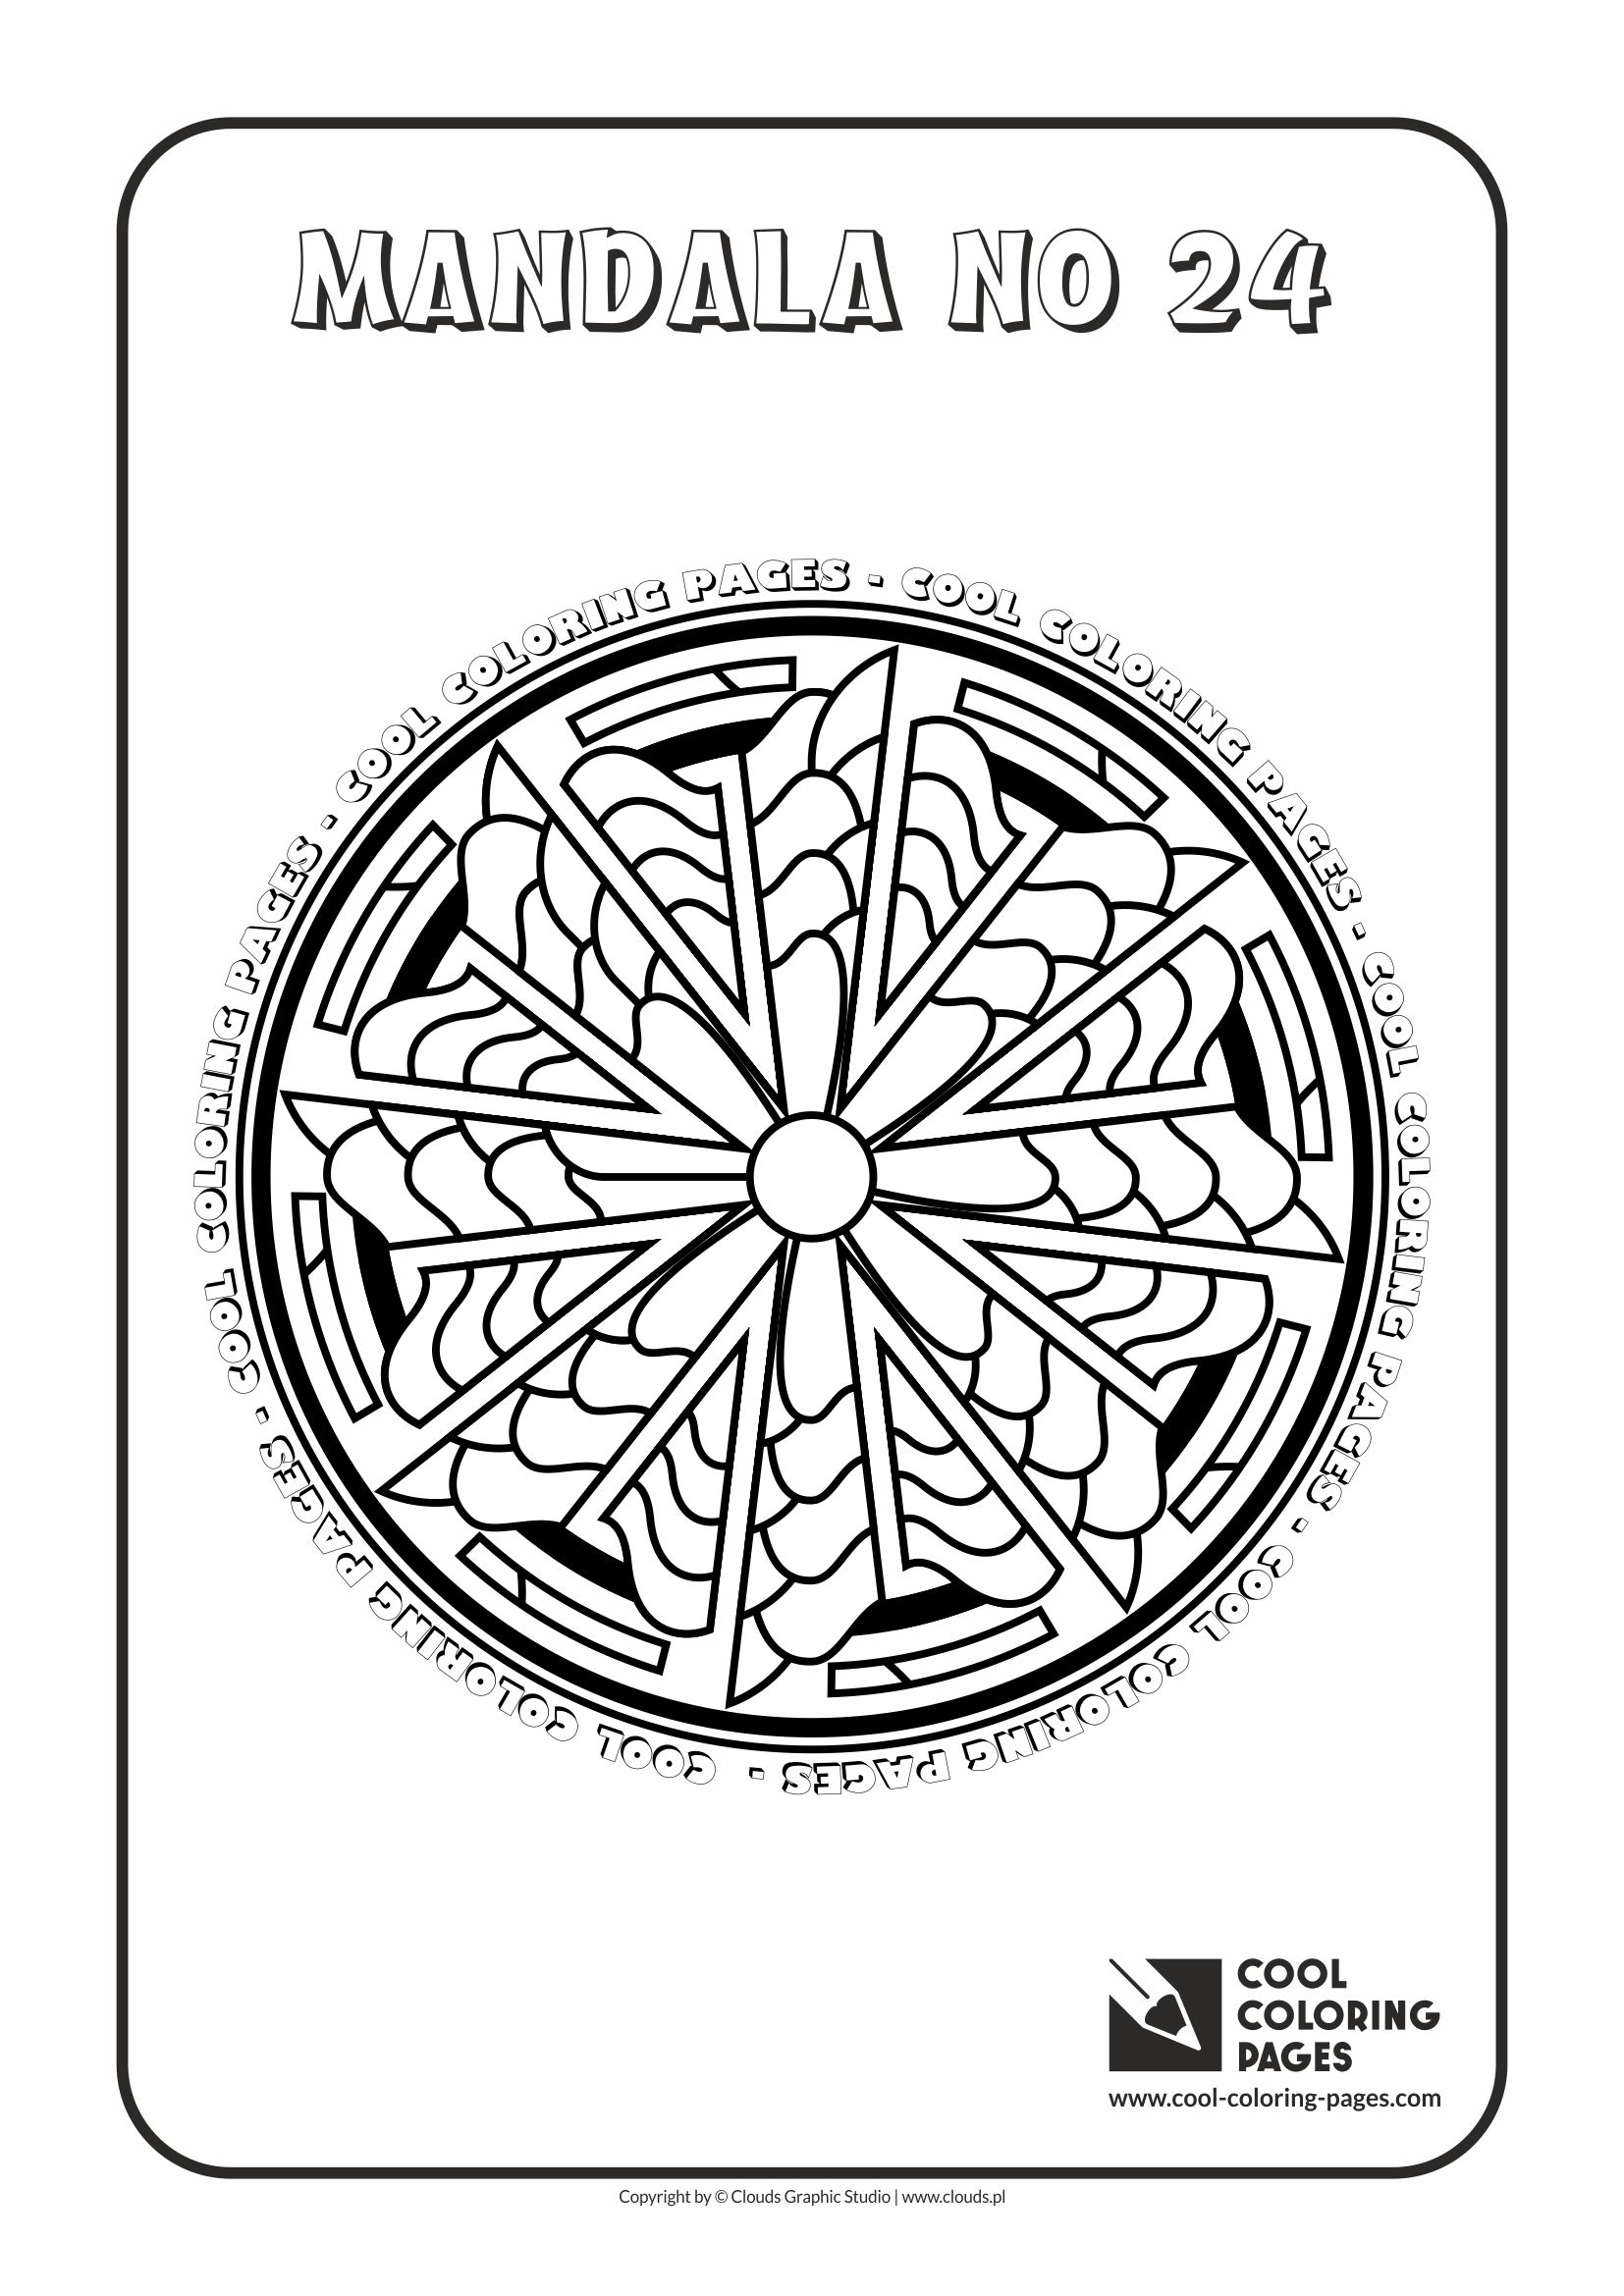 Cool Coloring Pages - Mandalas / Mandala no 24